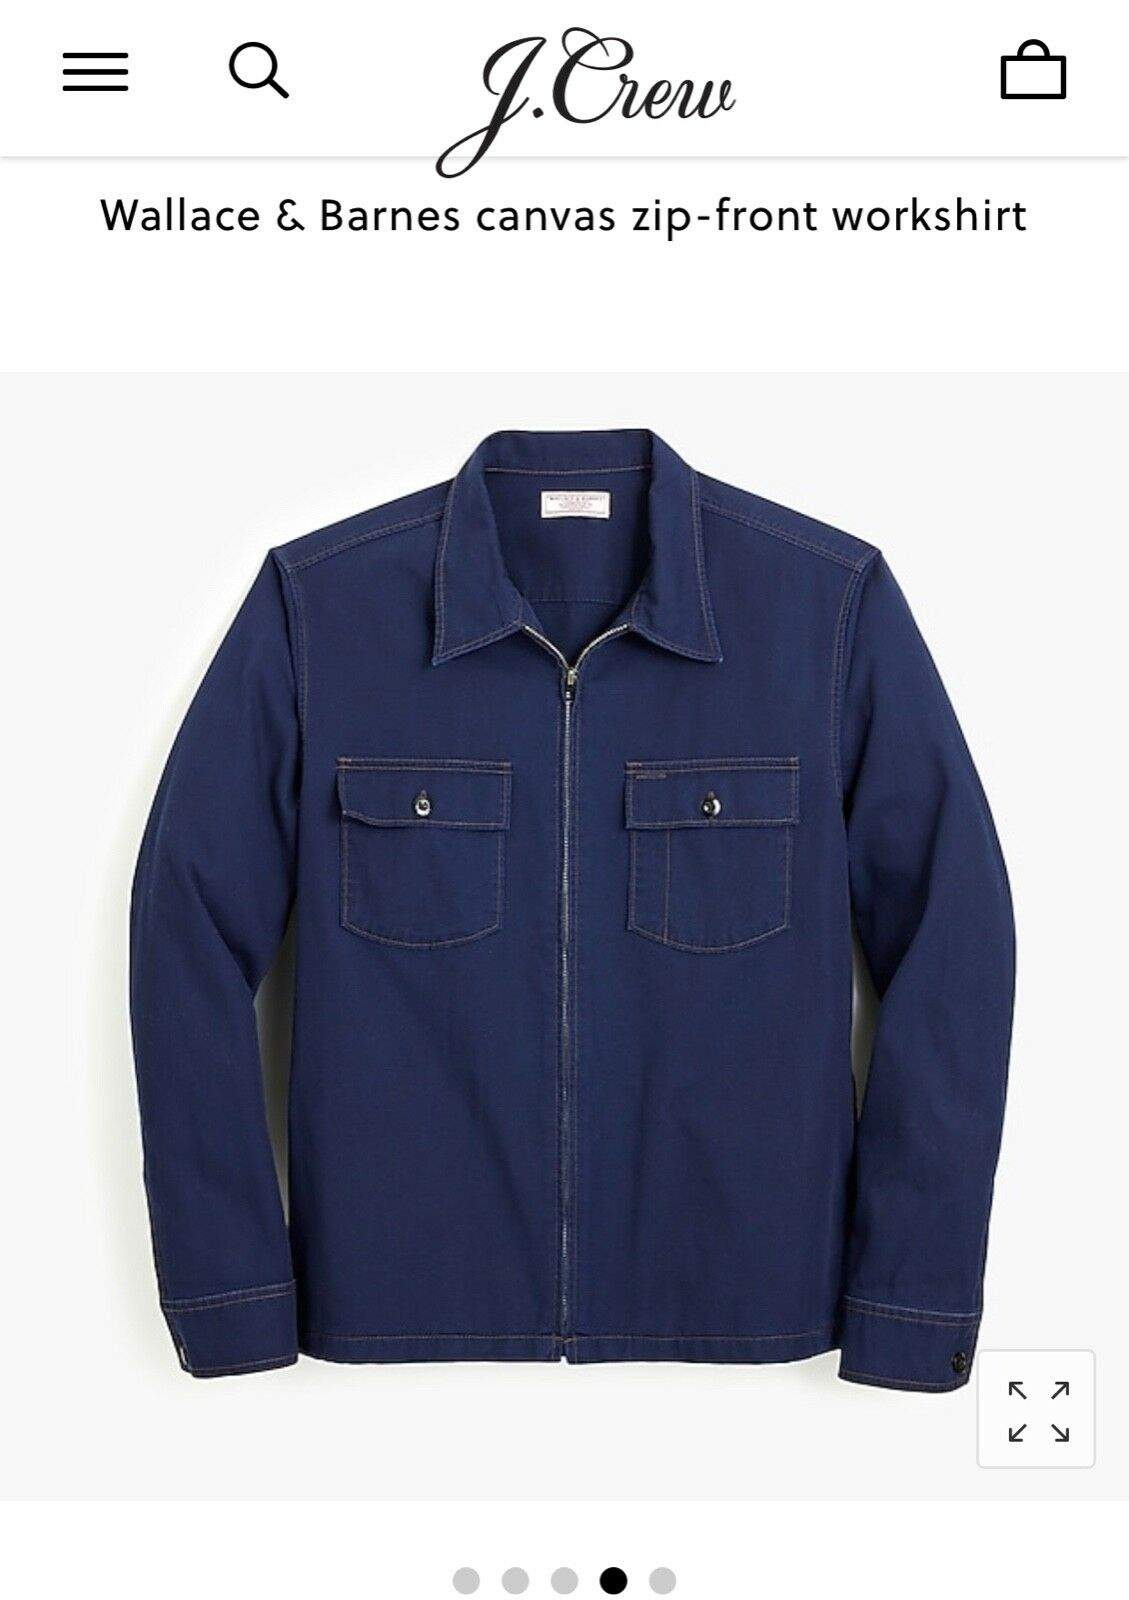 NWT J. Crew Wallace & Barnes canvas zip-front workshirt x Large XL New H7139